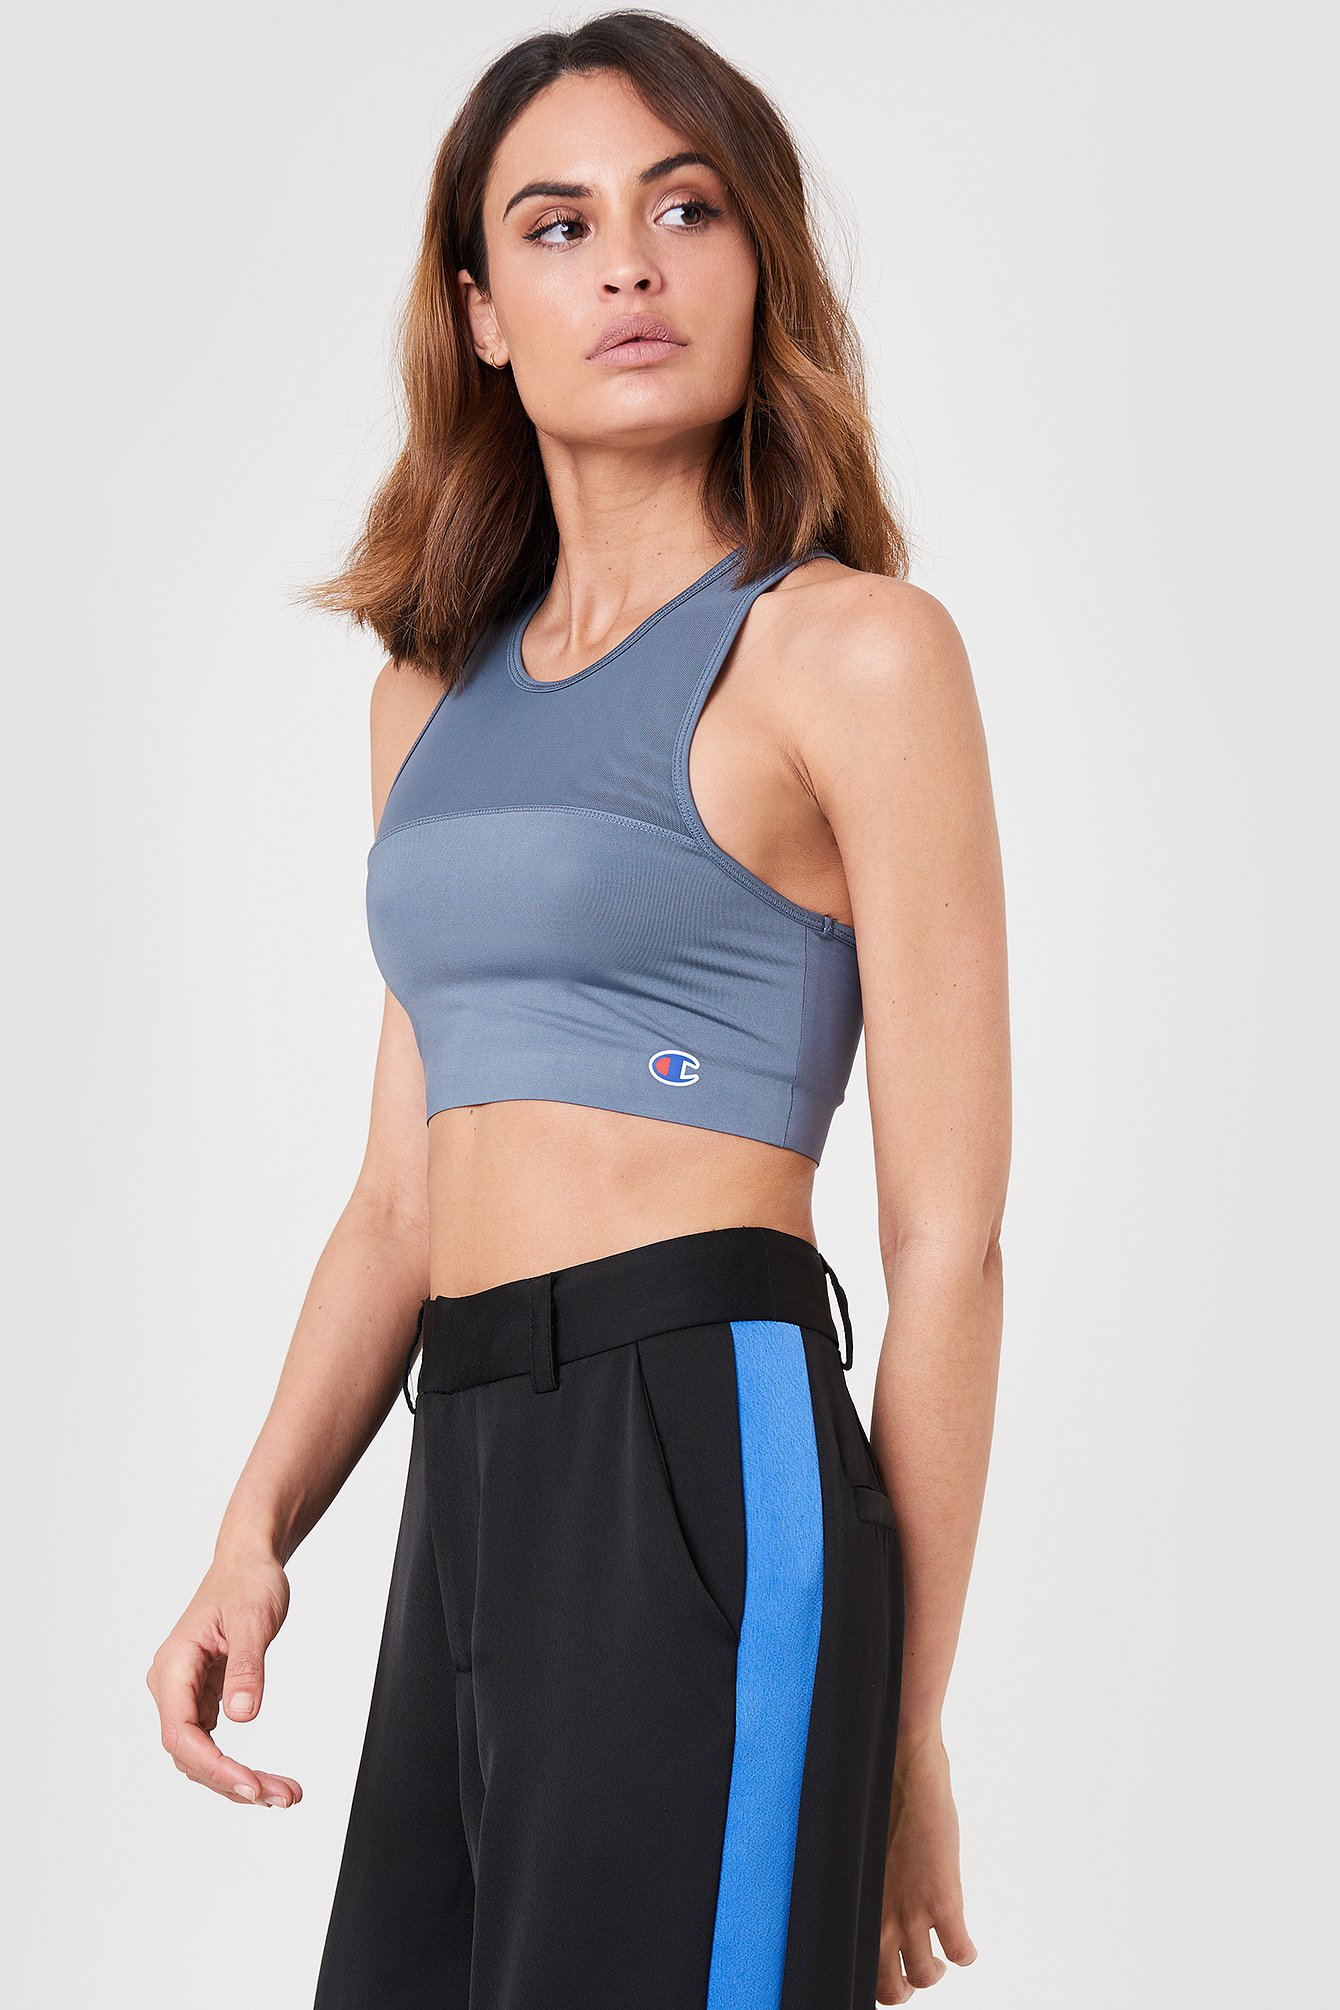 Champion Stretch Sports Bra - Grey